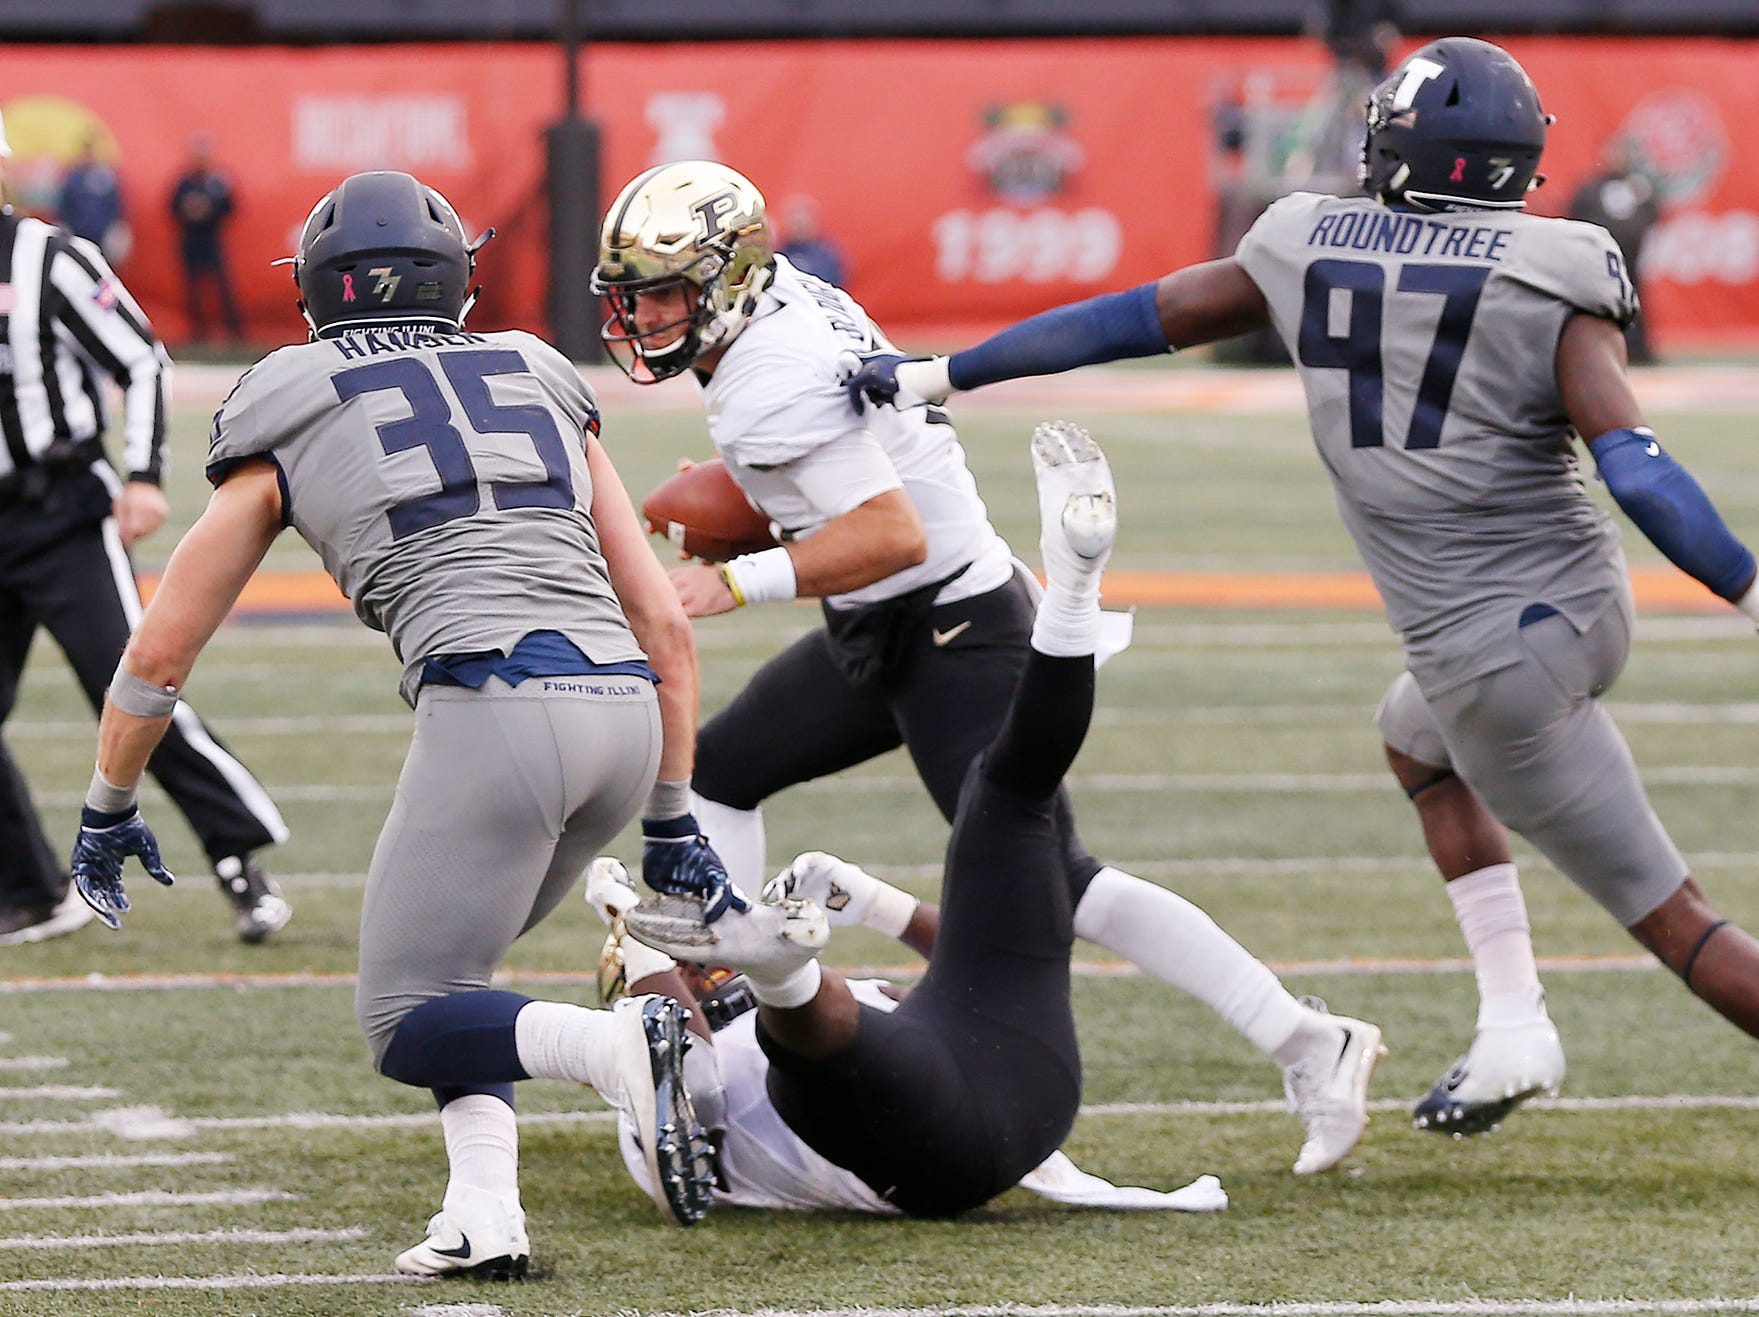 Purdue quarterback David Blough gets chased down by Jake Hansen and Bobby Roundtree of Illinois in the second half Saturday, October 13, 2018, in Champaign, Illinois. Purdue thumped Illinois 46-7.